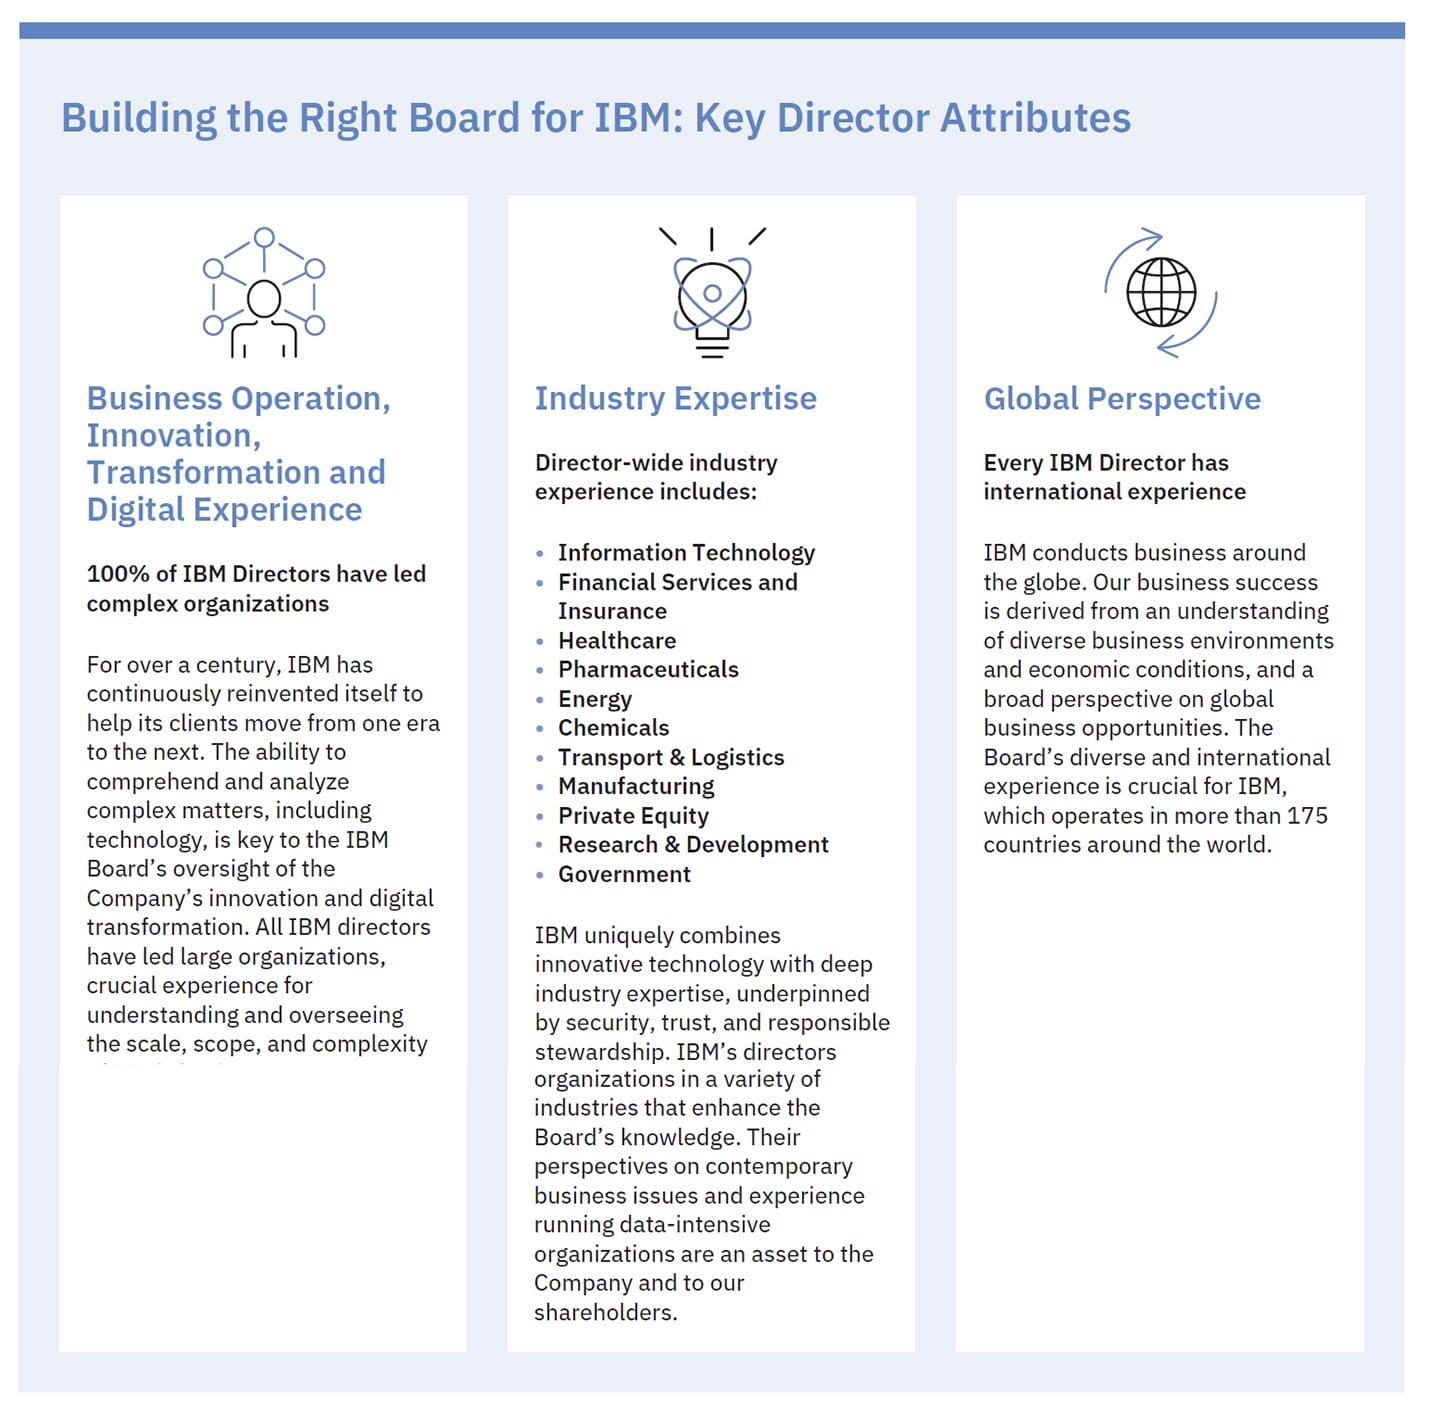 Building the Right Board for IBM